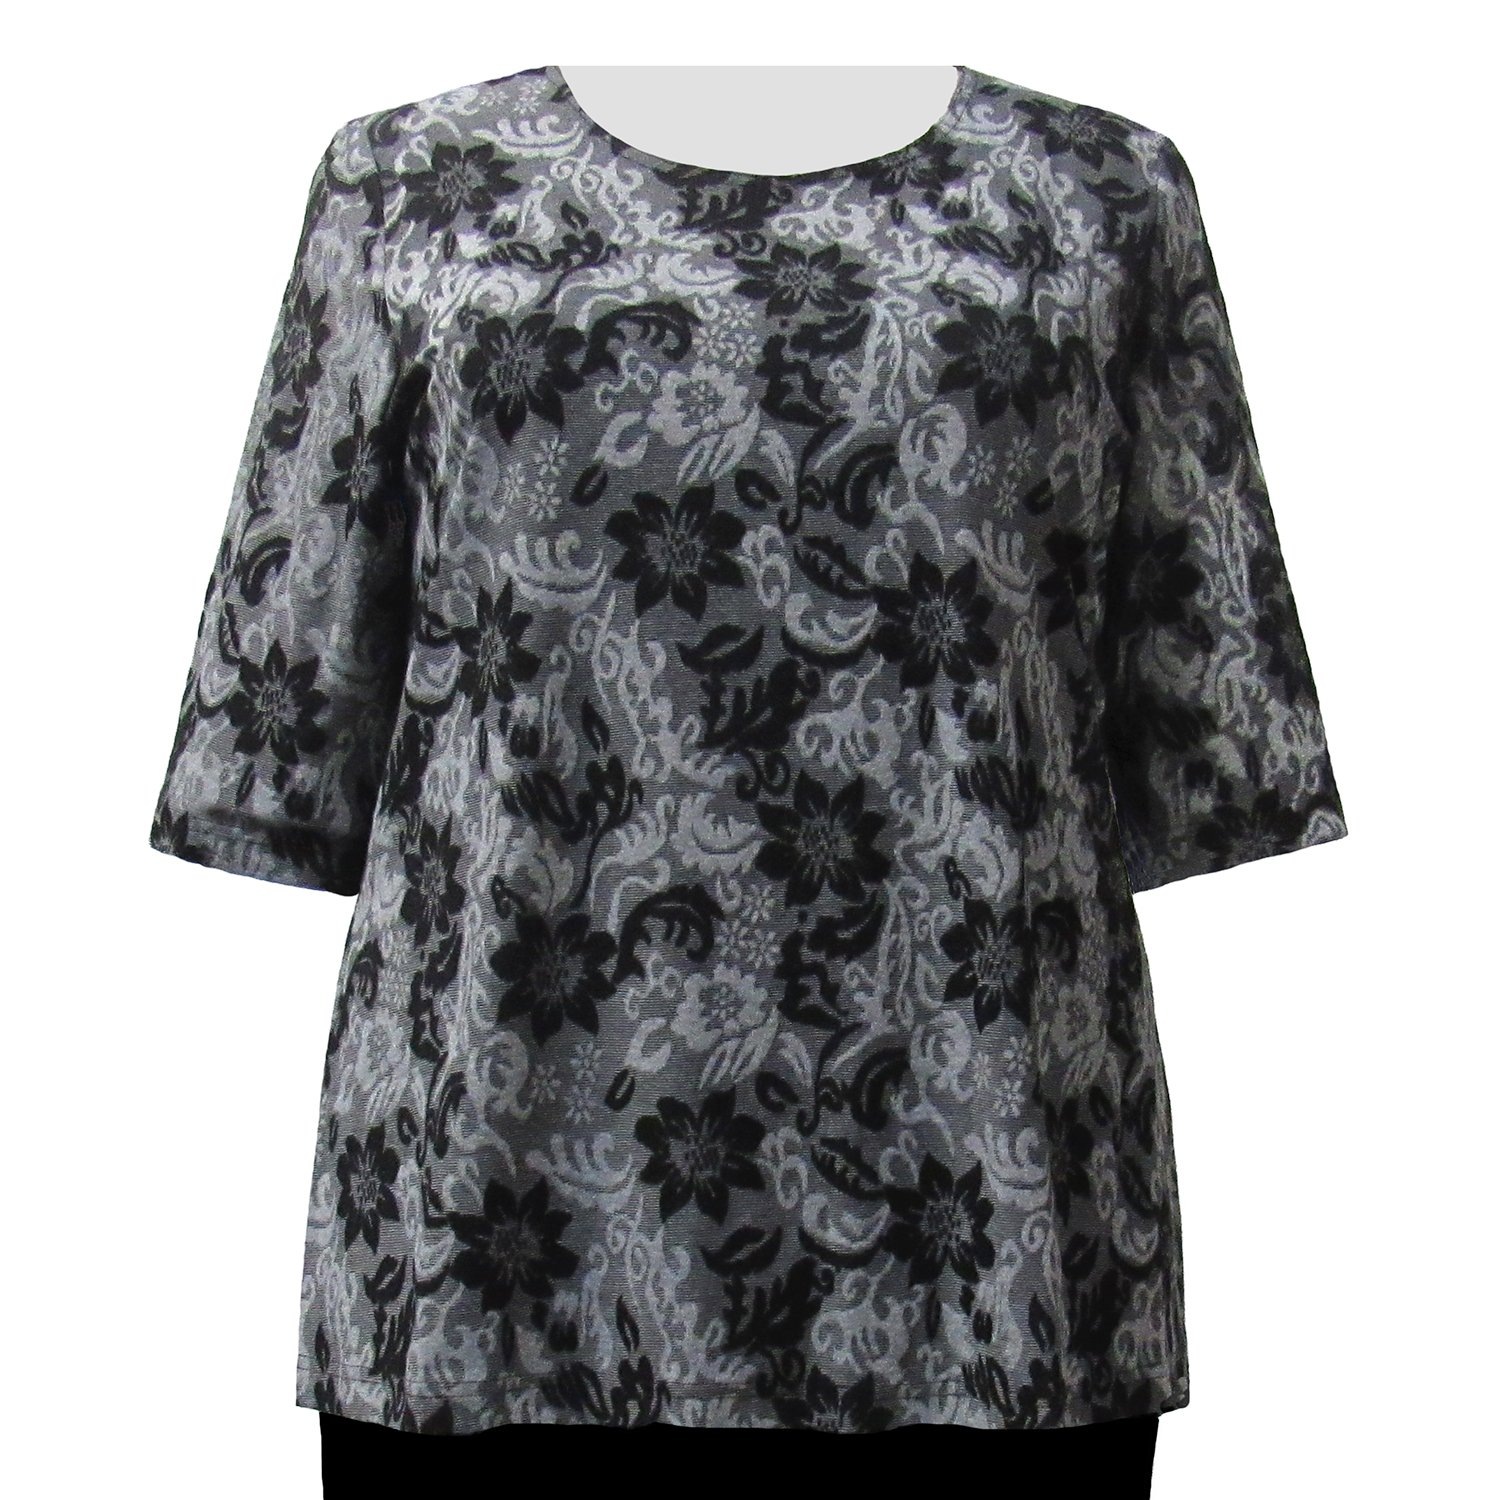 A Personal Touch Grey Floral Womens Plus Size Knit Sweater